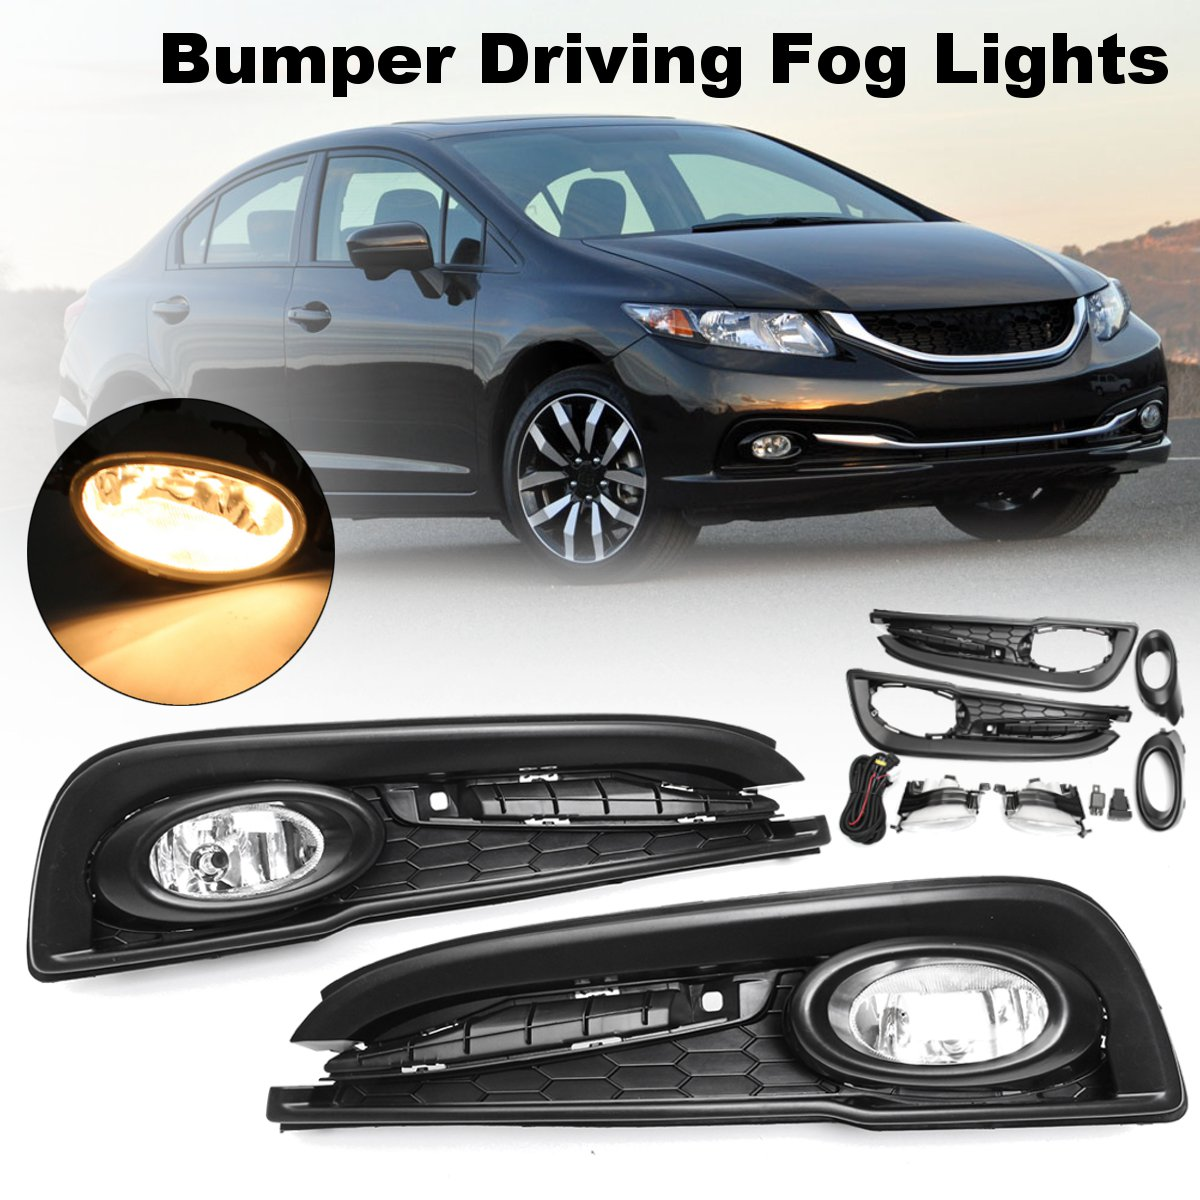 1 Pair H11 55W DC 12V Clear Bumper Driving Fog Lights w/ Wiring Harness Replacements for Honda for Civic 4DR Sedan 2013~2015